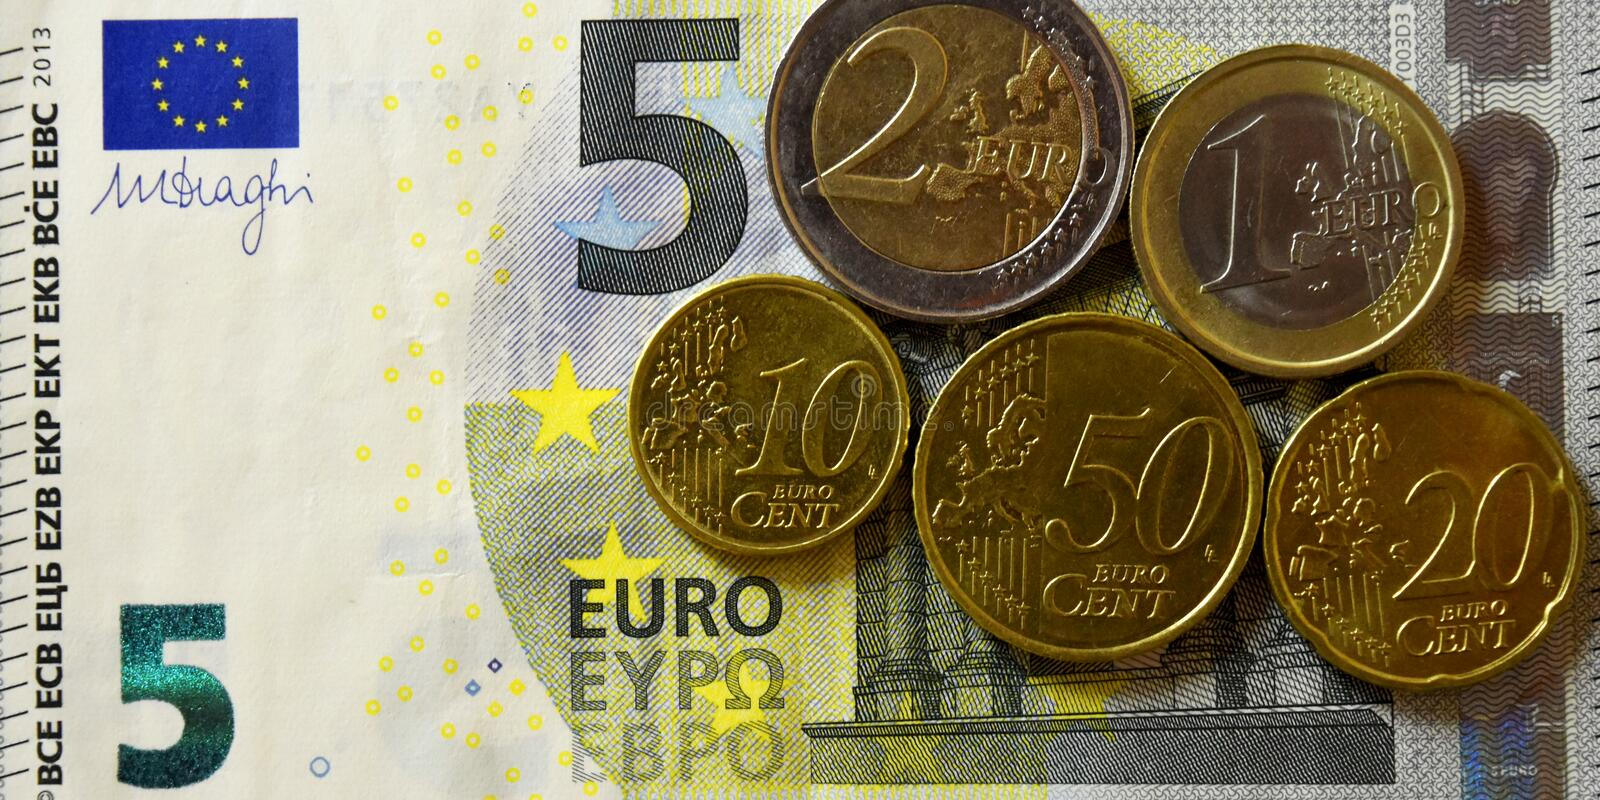 Money, Banknote, Bills, USD, Euro, Coins, Penny, Dime, Quarter. Colorful background of Money, Banknote, Bills, USD, Euro and coins stock photography